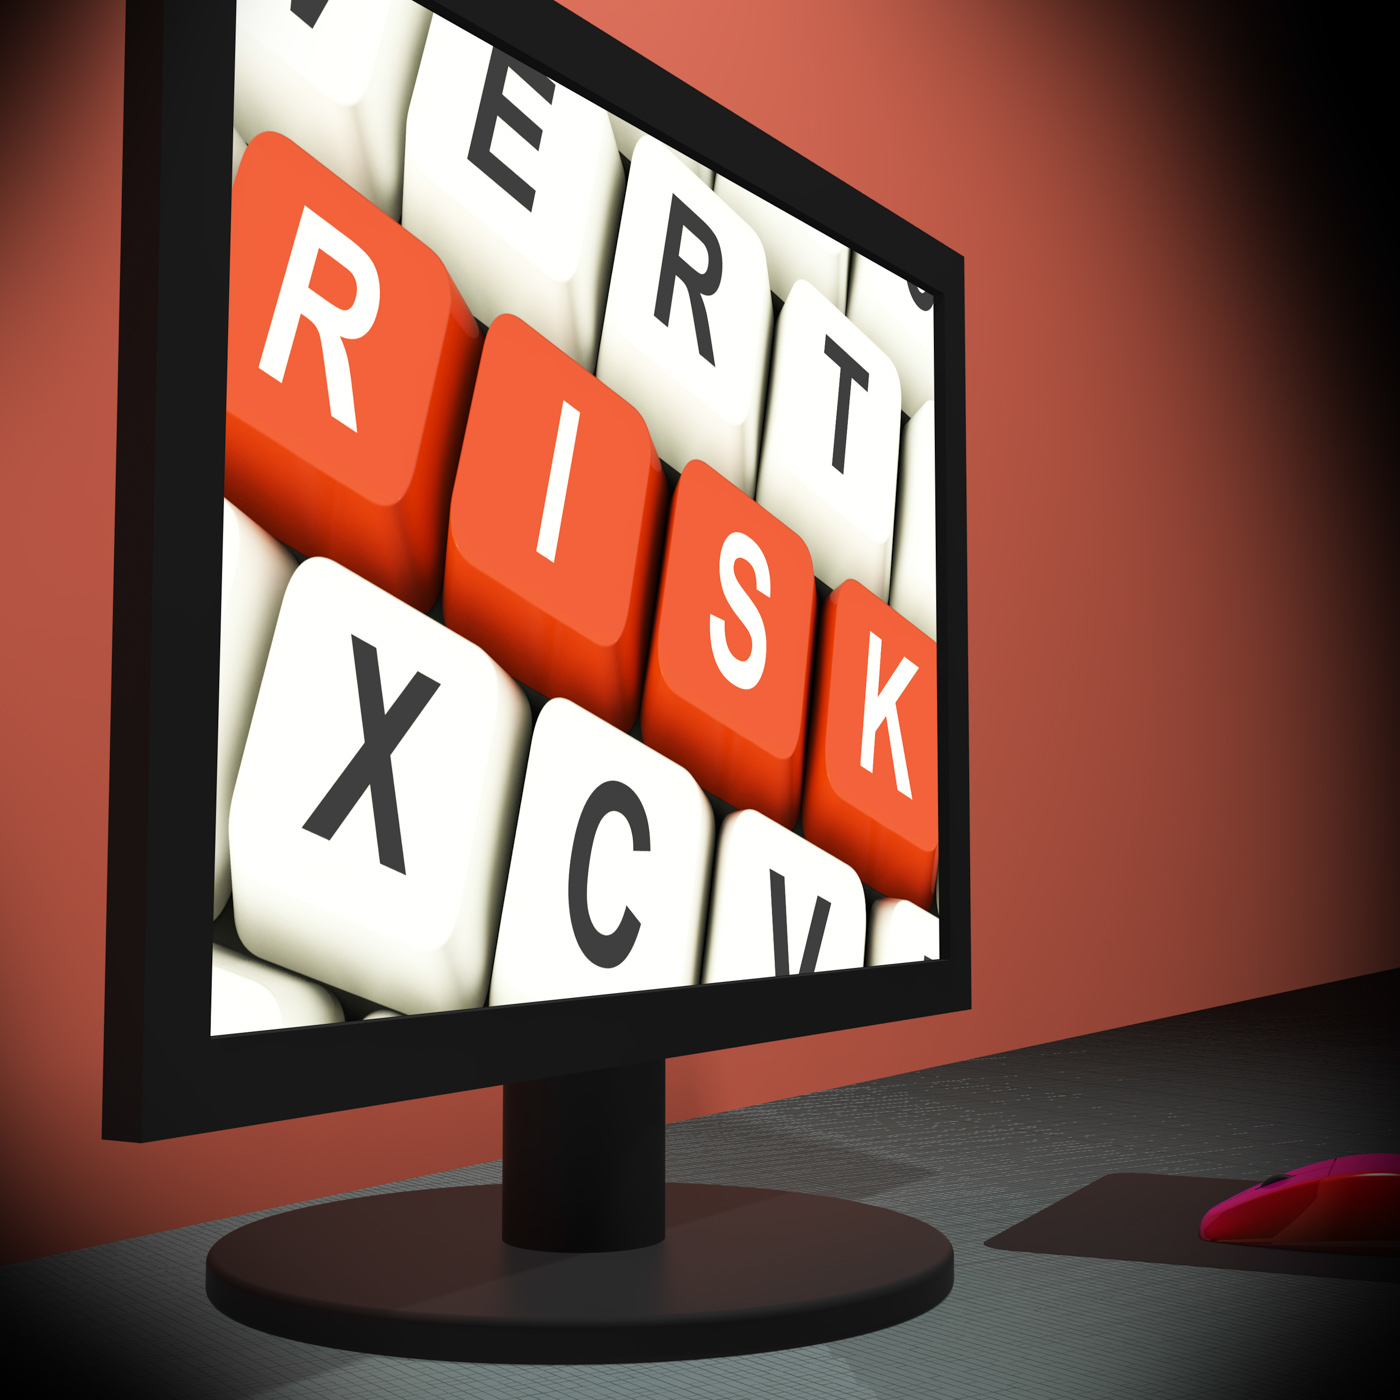 Risk on monitor shows unstable situation photo